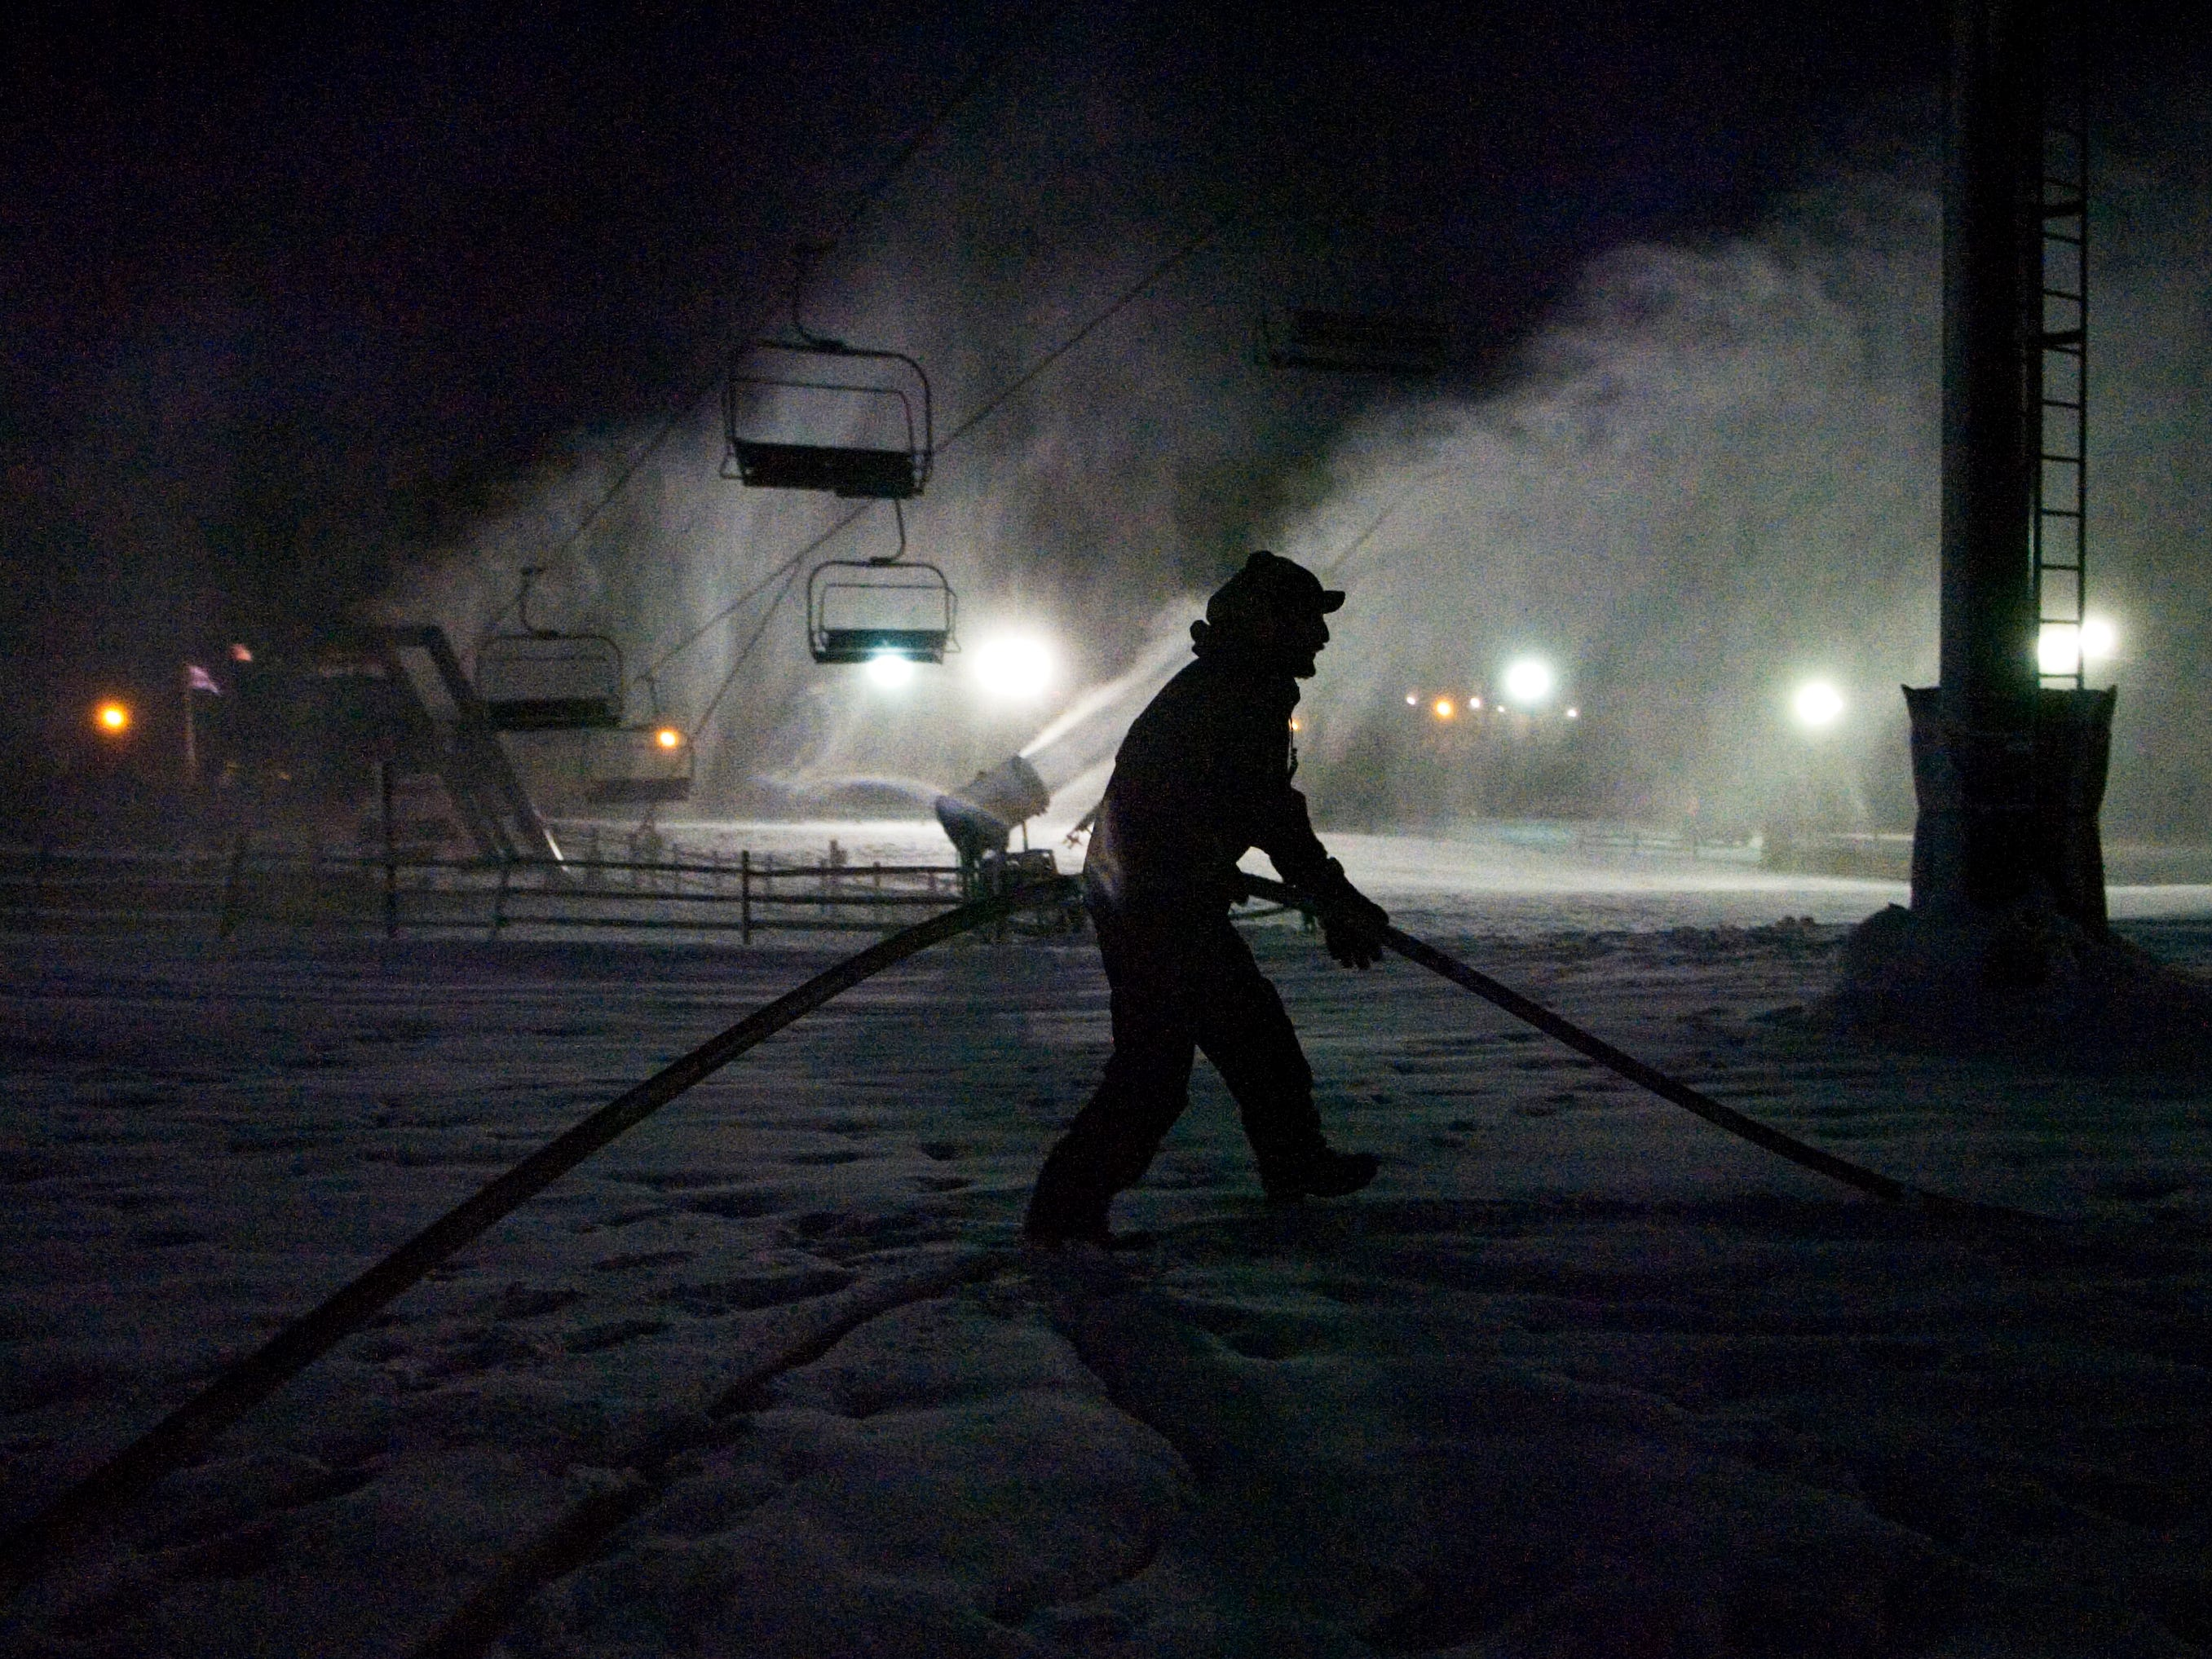 Scott Wiggins of Mechanicsburg moves a hose used to make snow at Ski Roundtop December 10, 2009.